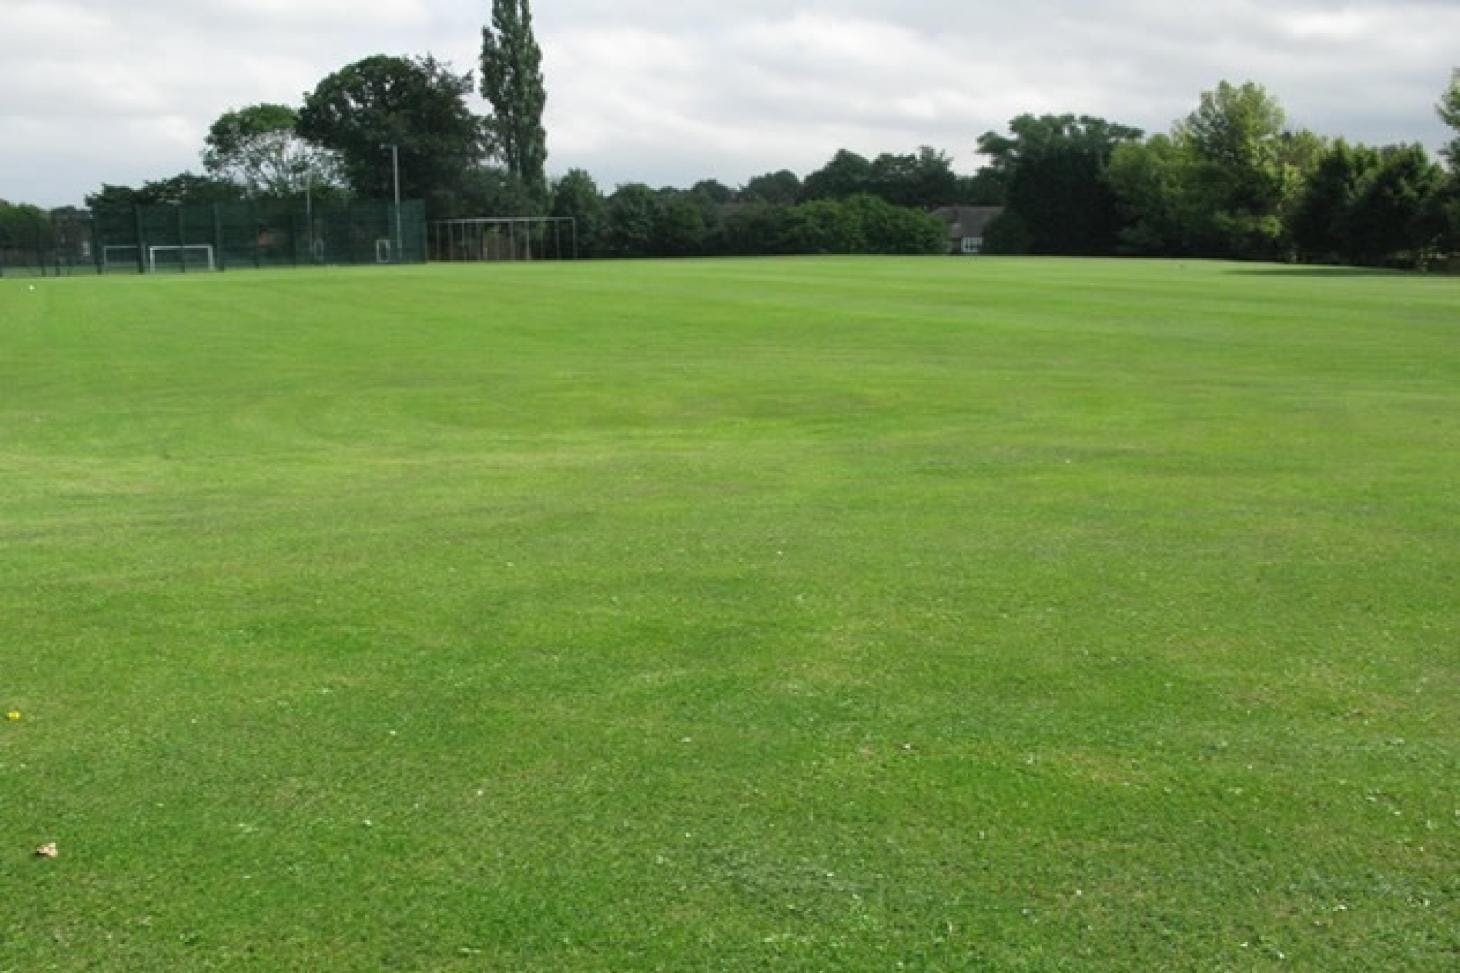 Denbigh High School Full size | Grass cricket facilities